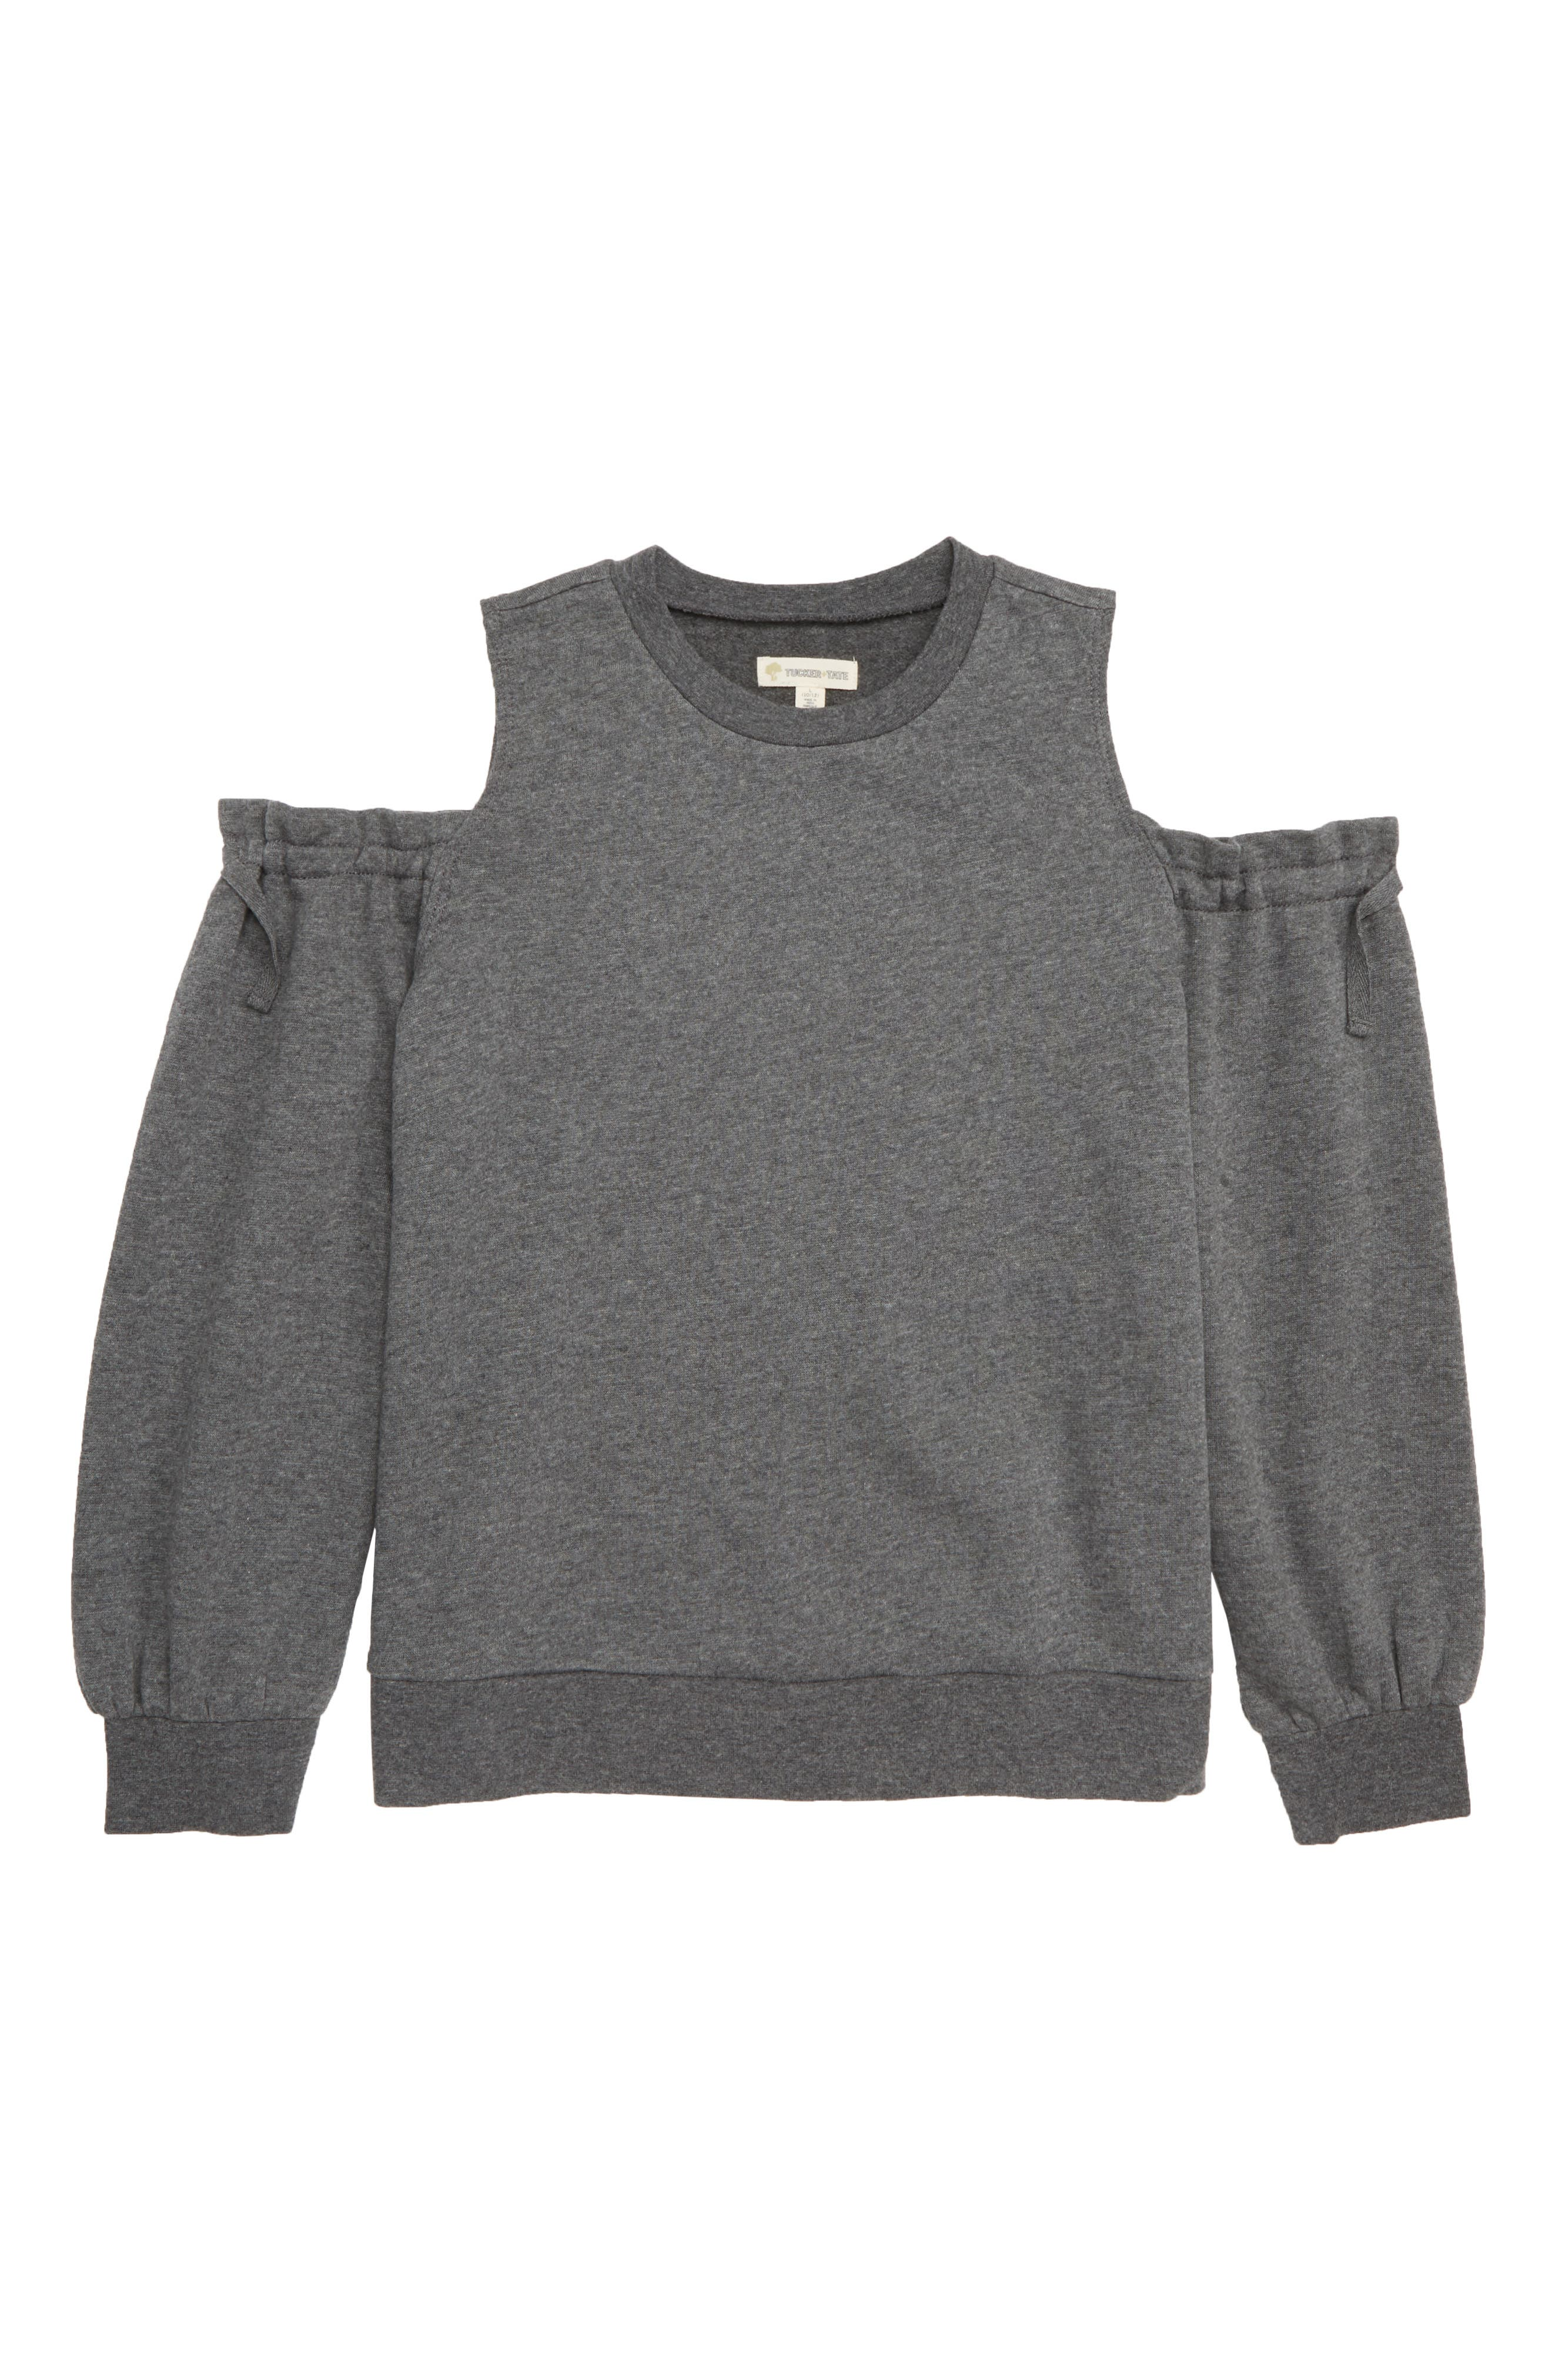 Cold Shoulder Sweatshirt,                             Main thumbnail 1, color,                             GREY CHARCOAL HEATHER